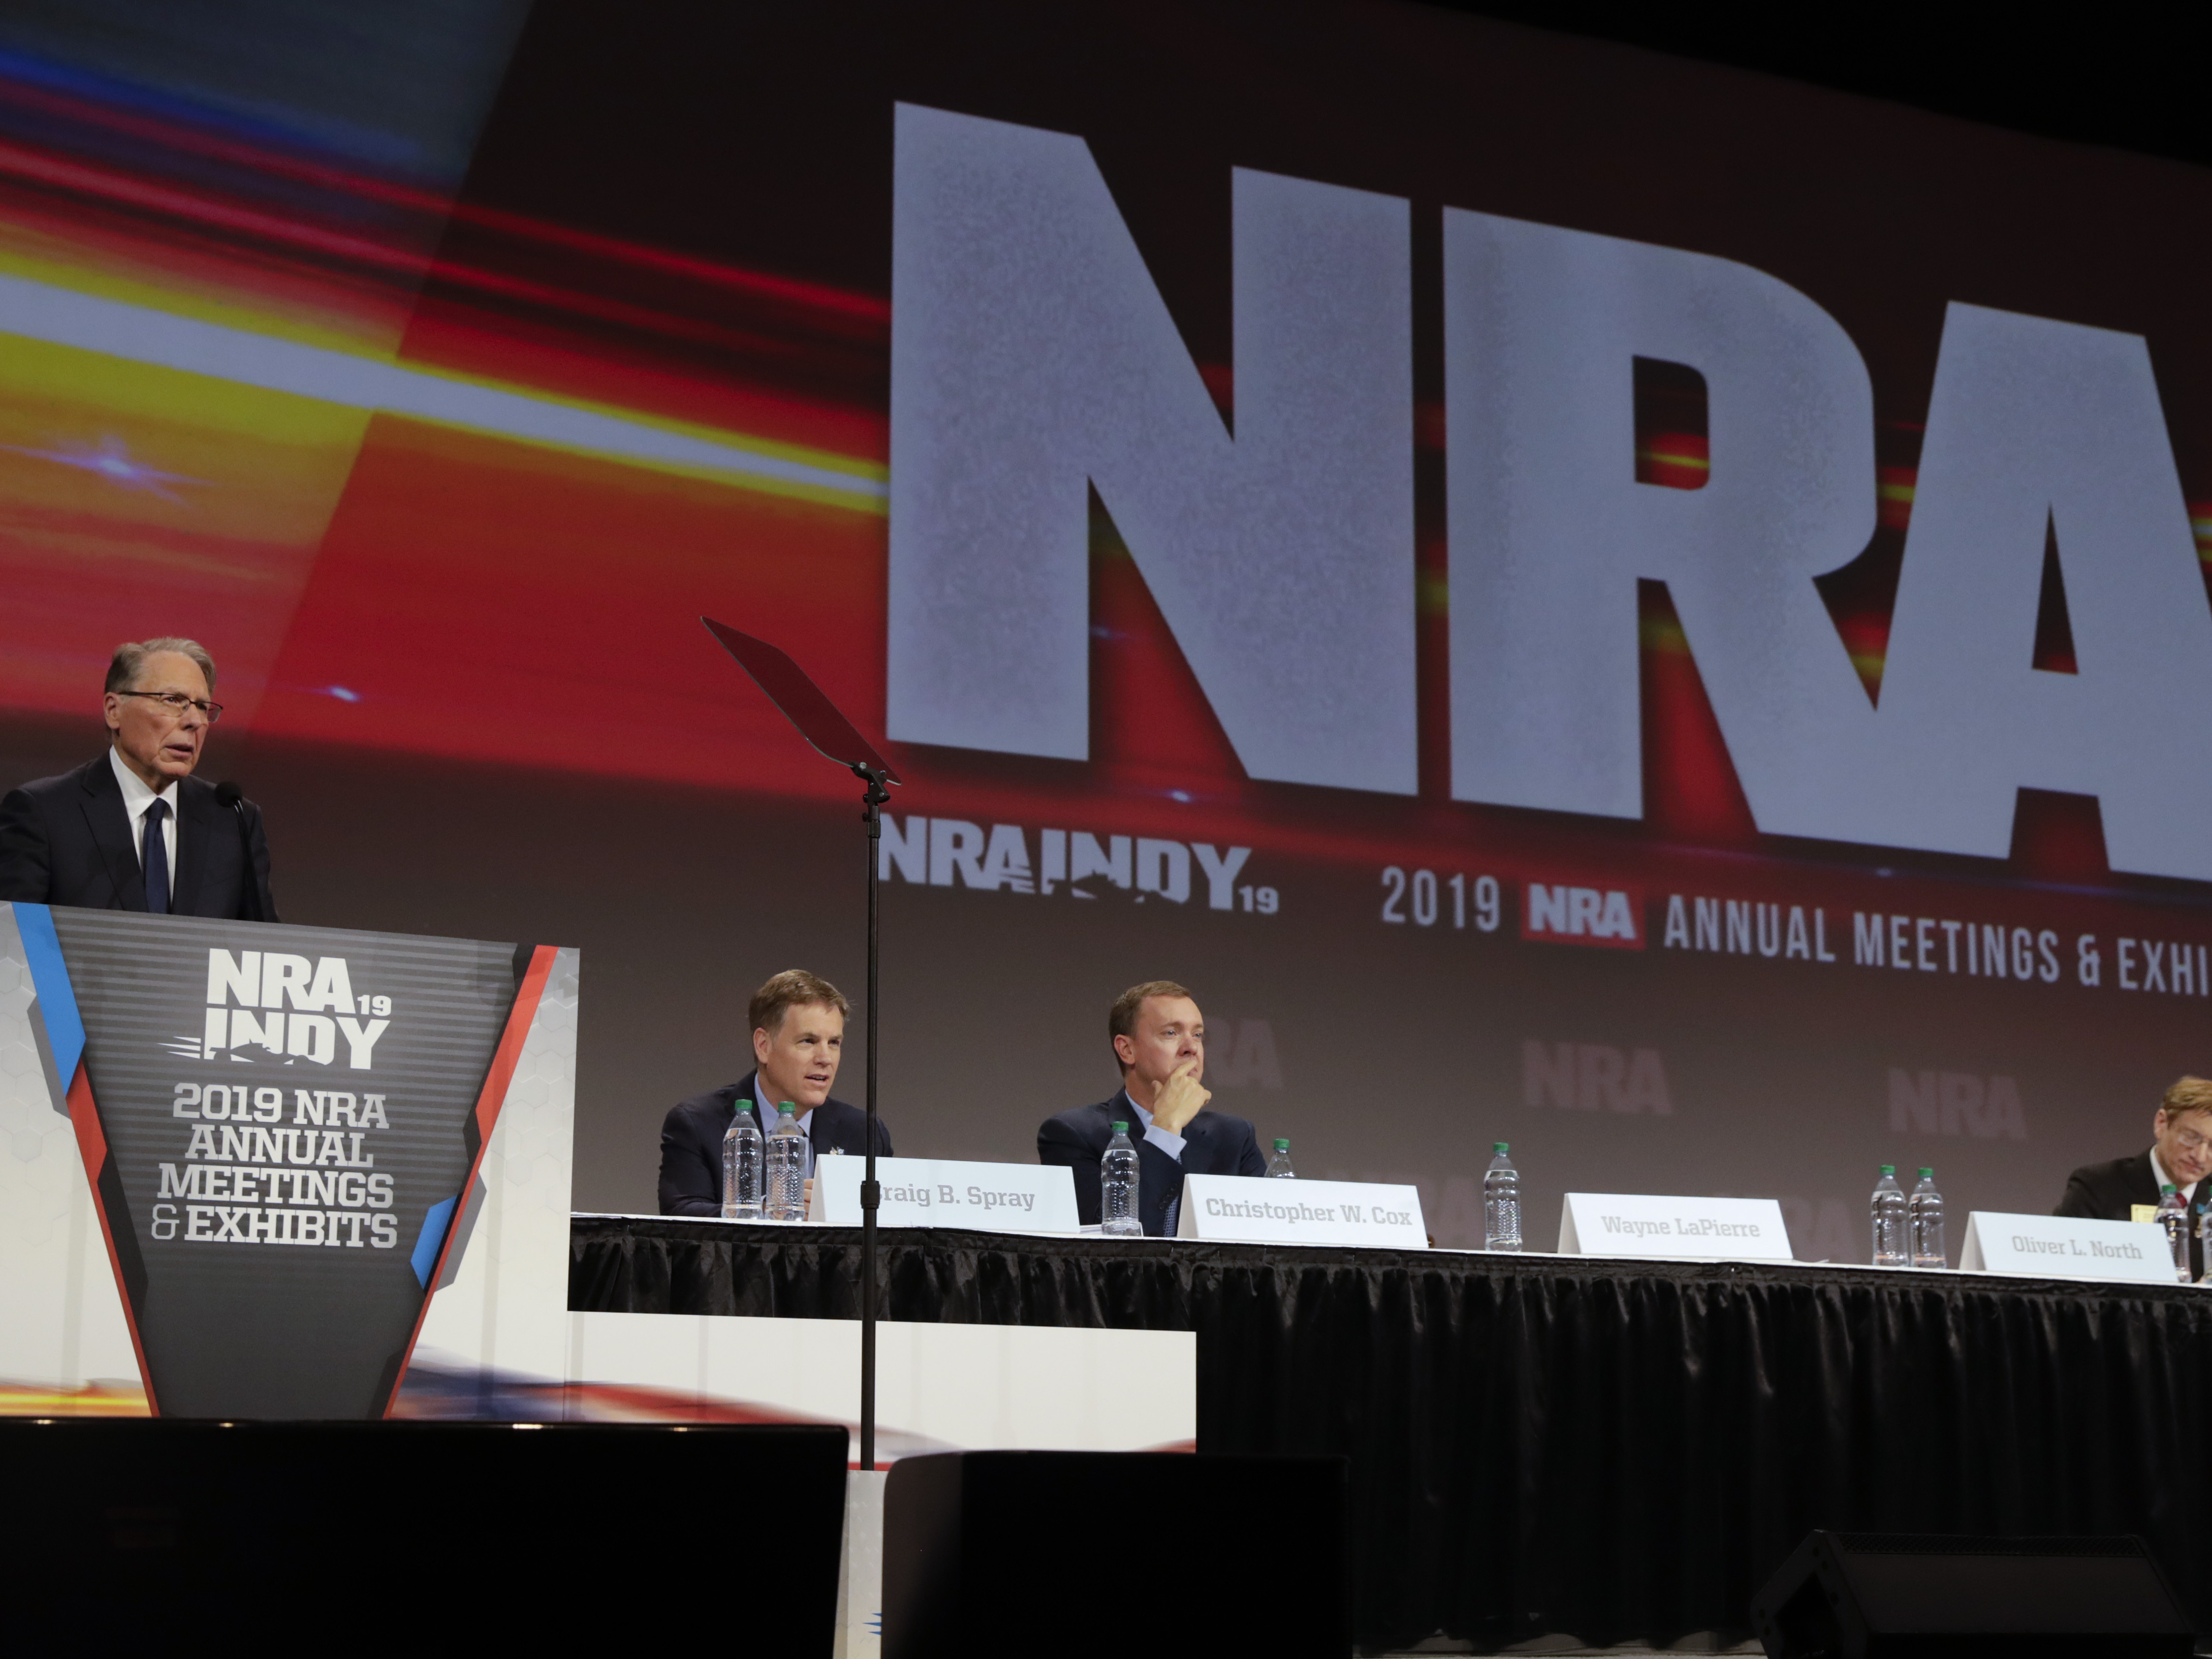 Dem Report: NRA Was 'Foreign Asset' for Russian Federation